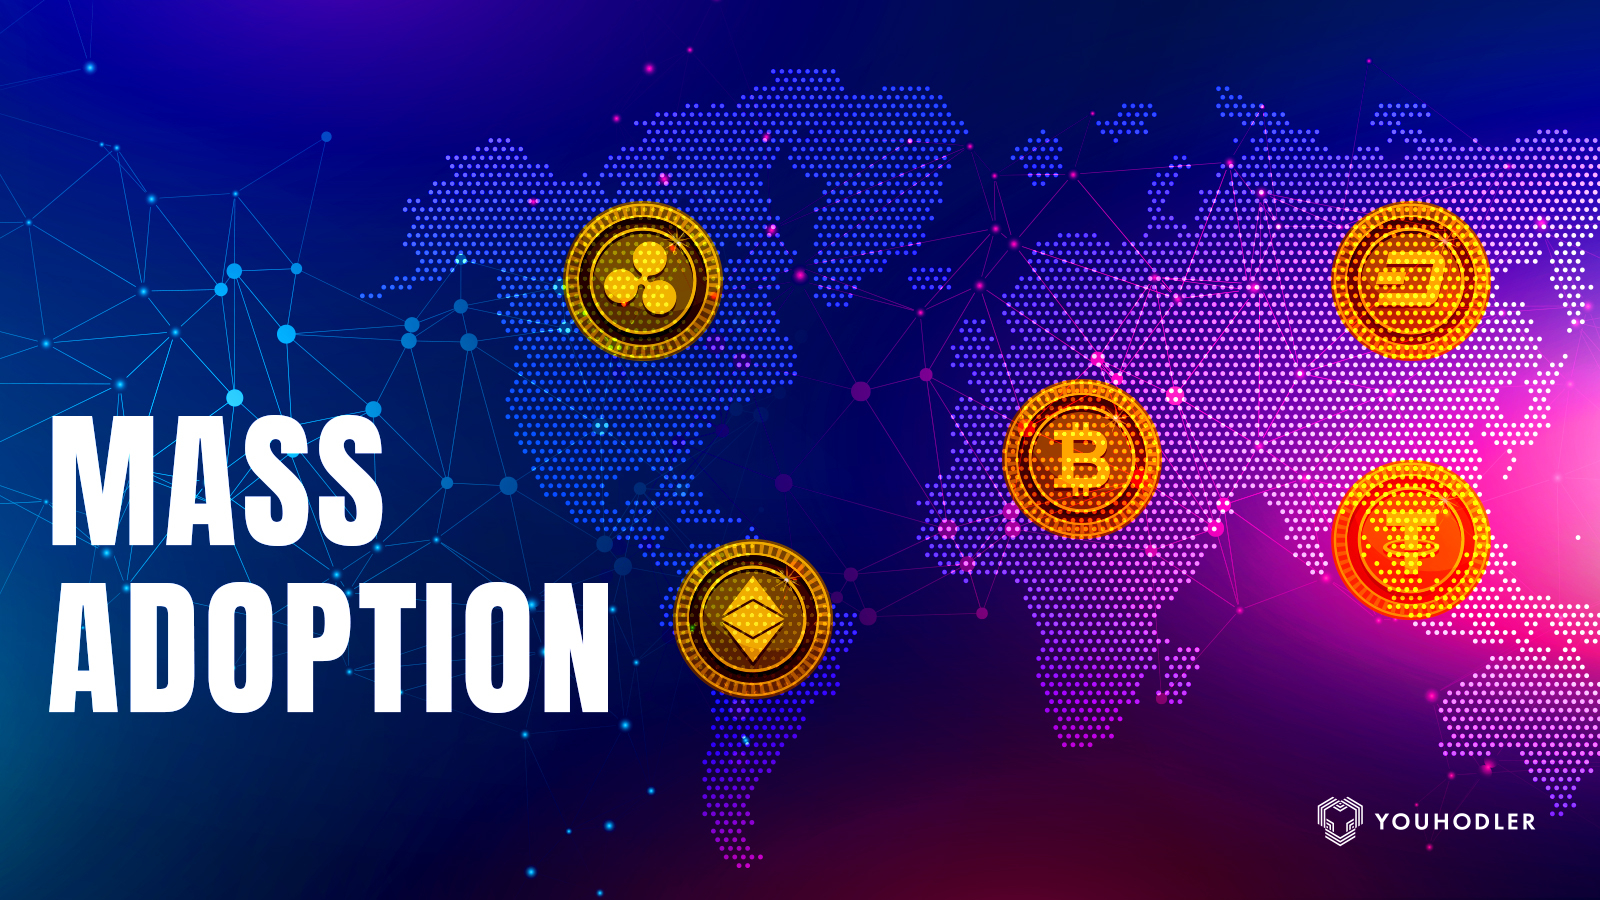 cryptocurrencies surround the globe symbolizing mass adoption